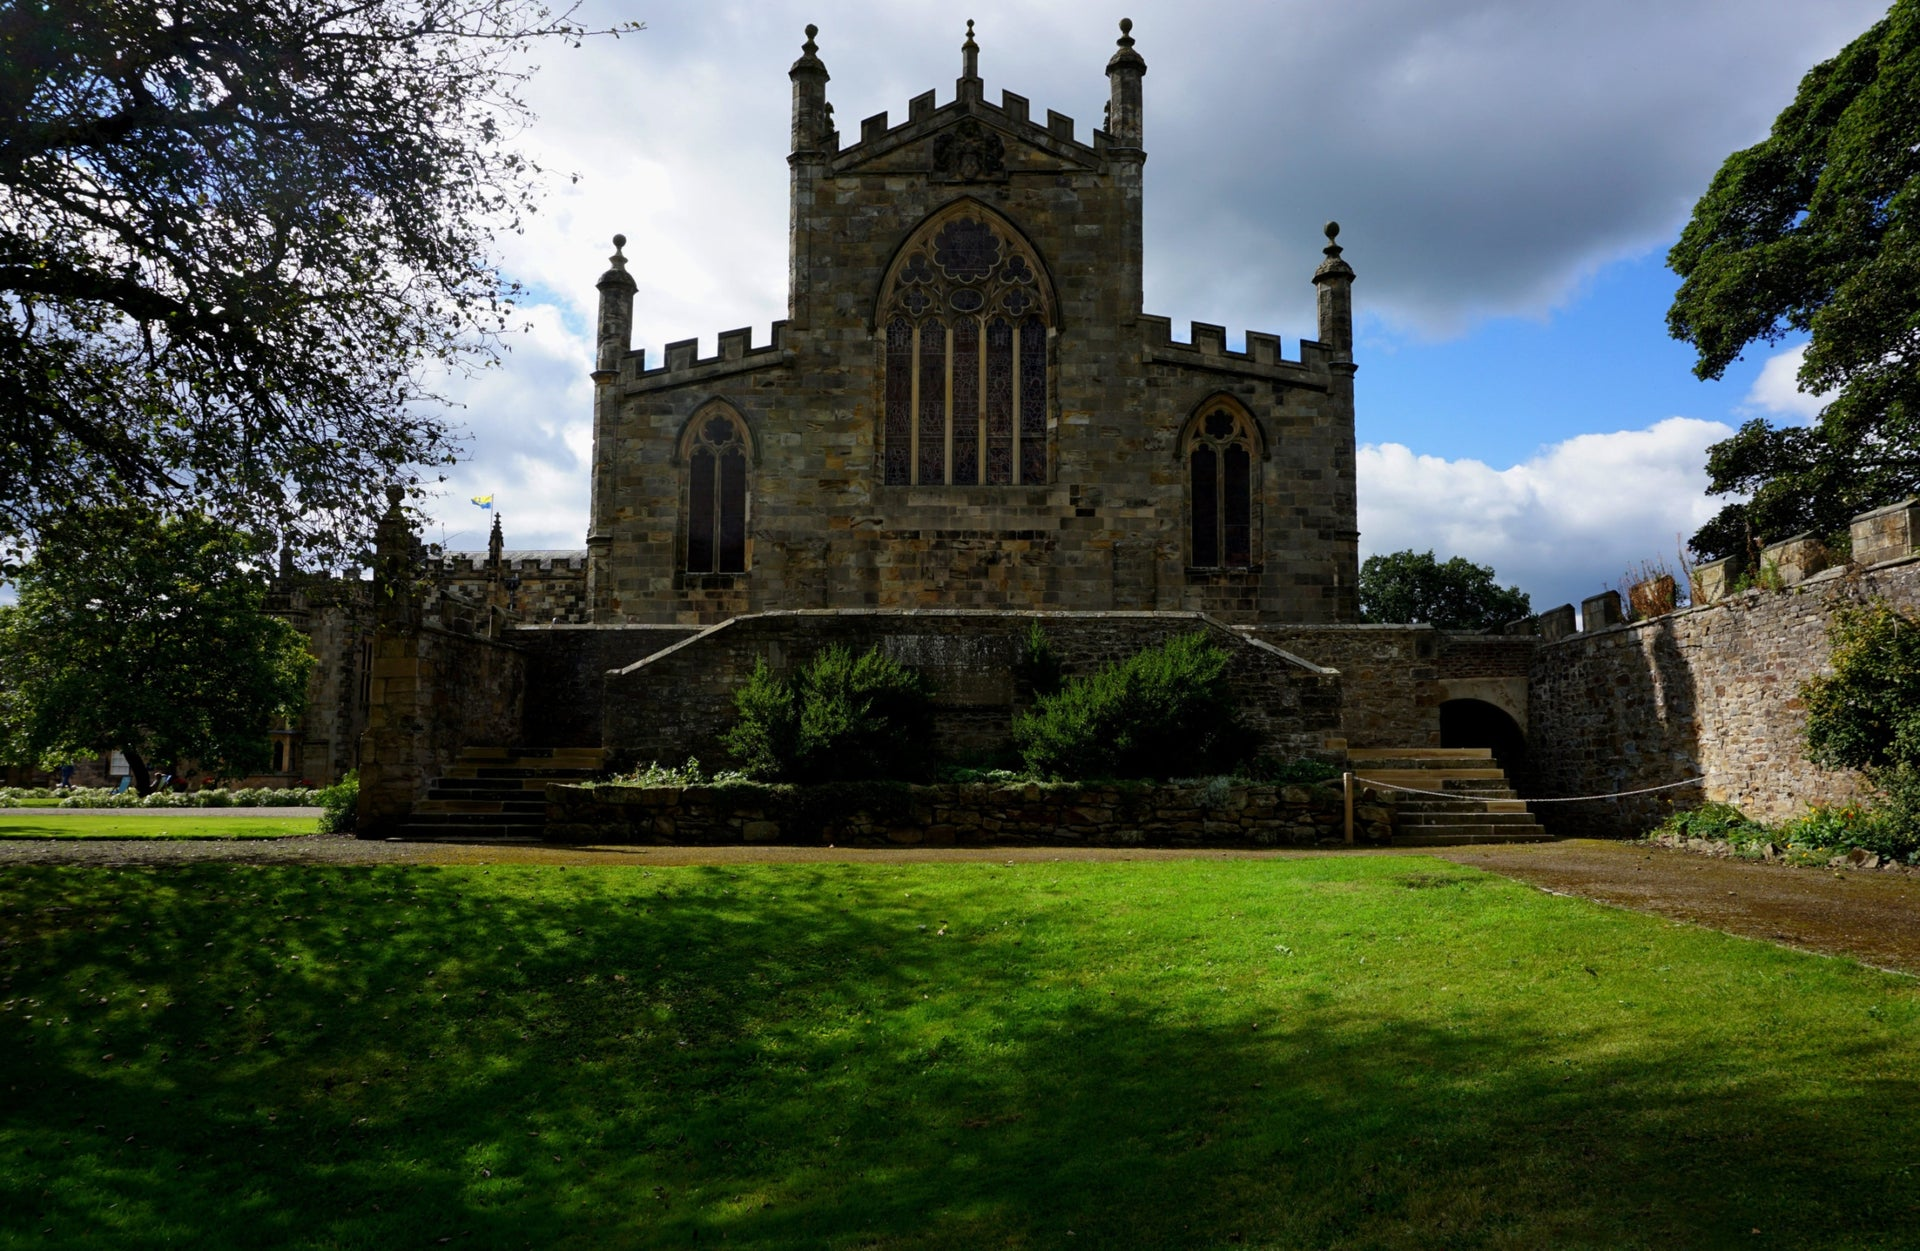 Bishop Auckland, Auckland Castle, the main facade of the small chapel church that is part of the complex, County Durham, England.